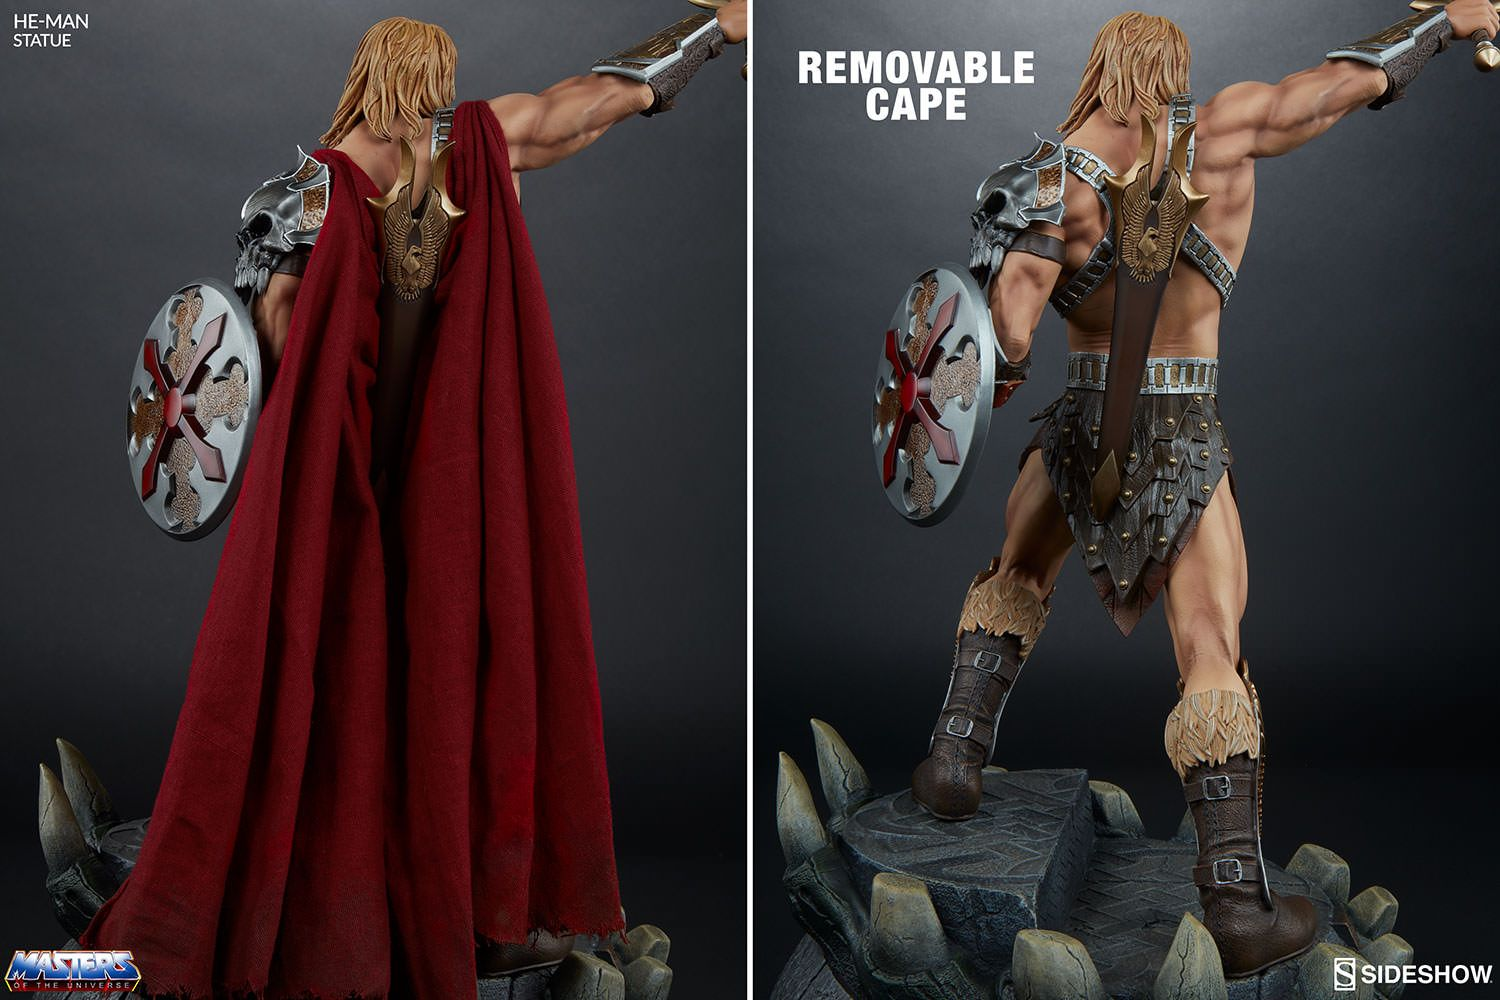 Masters of the Universe HeMan Statue by Sideshow Collectible | Sideshow Collectibles